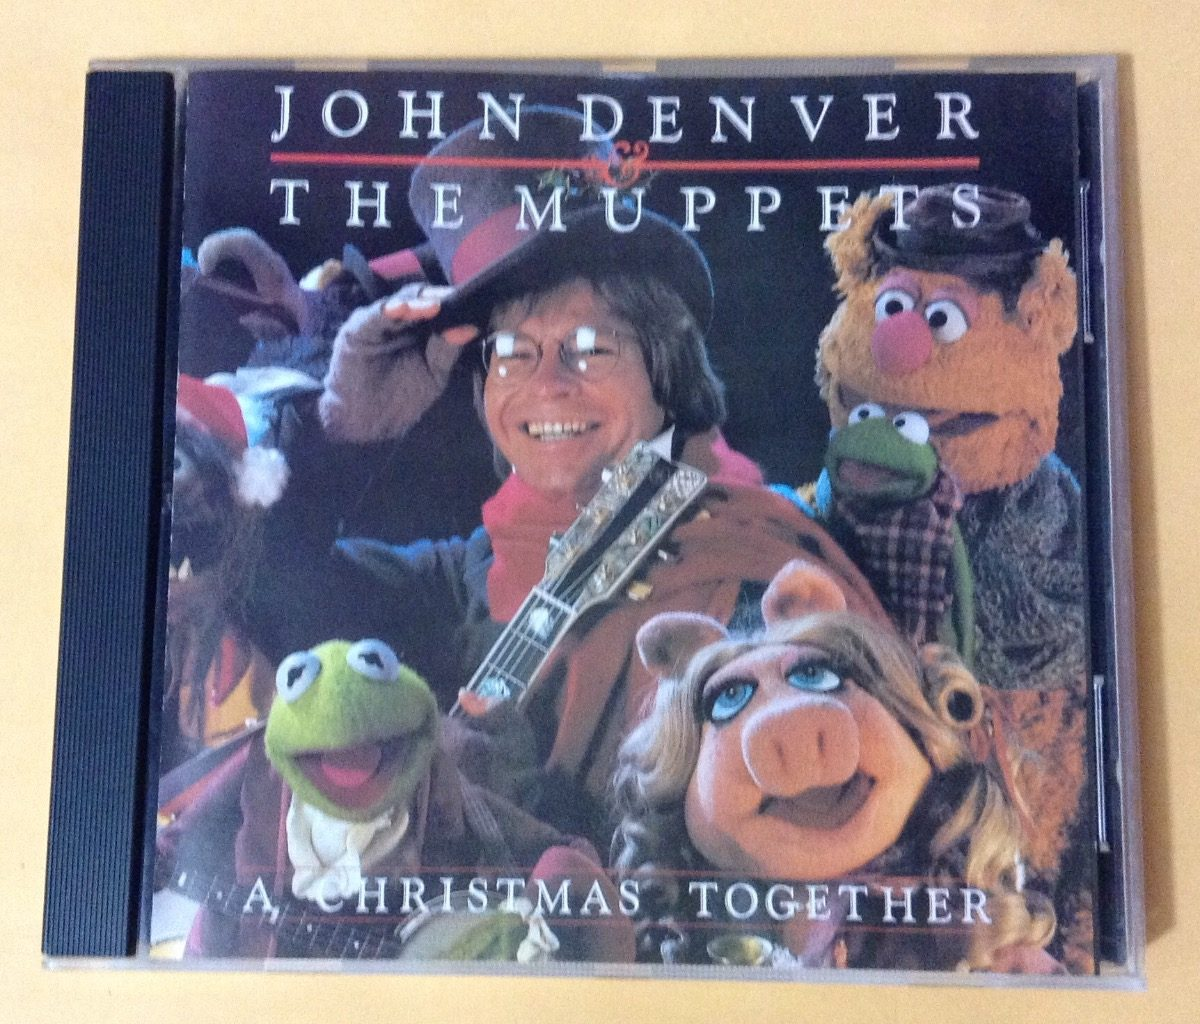 John Denver Y The Muppets - A Christmas Together - Cd 1a Ed ...